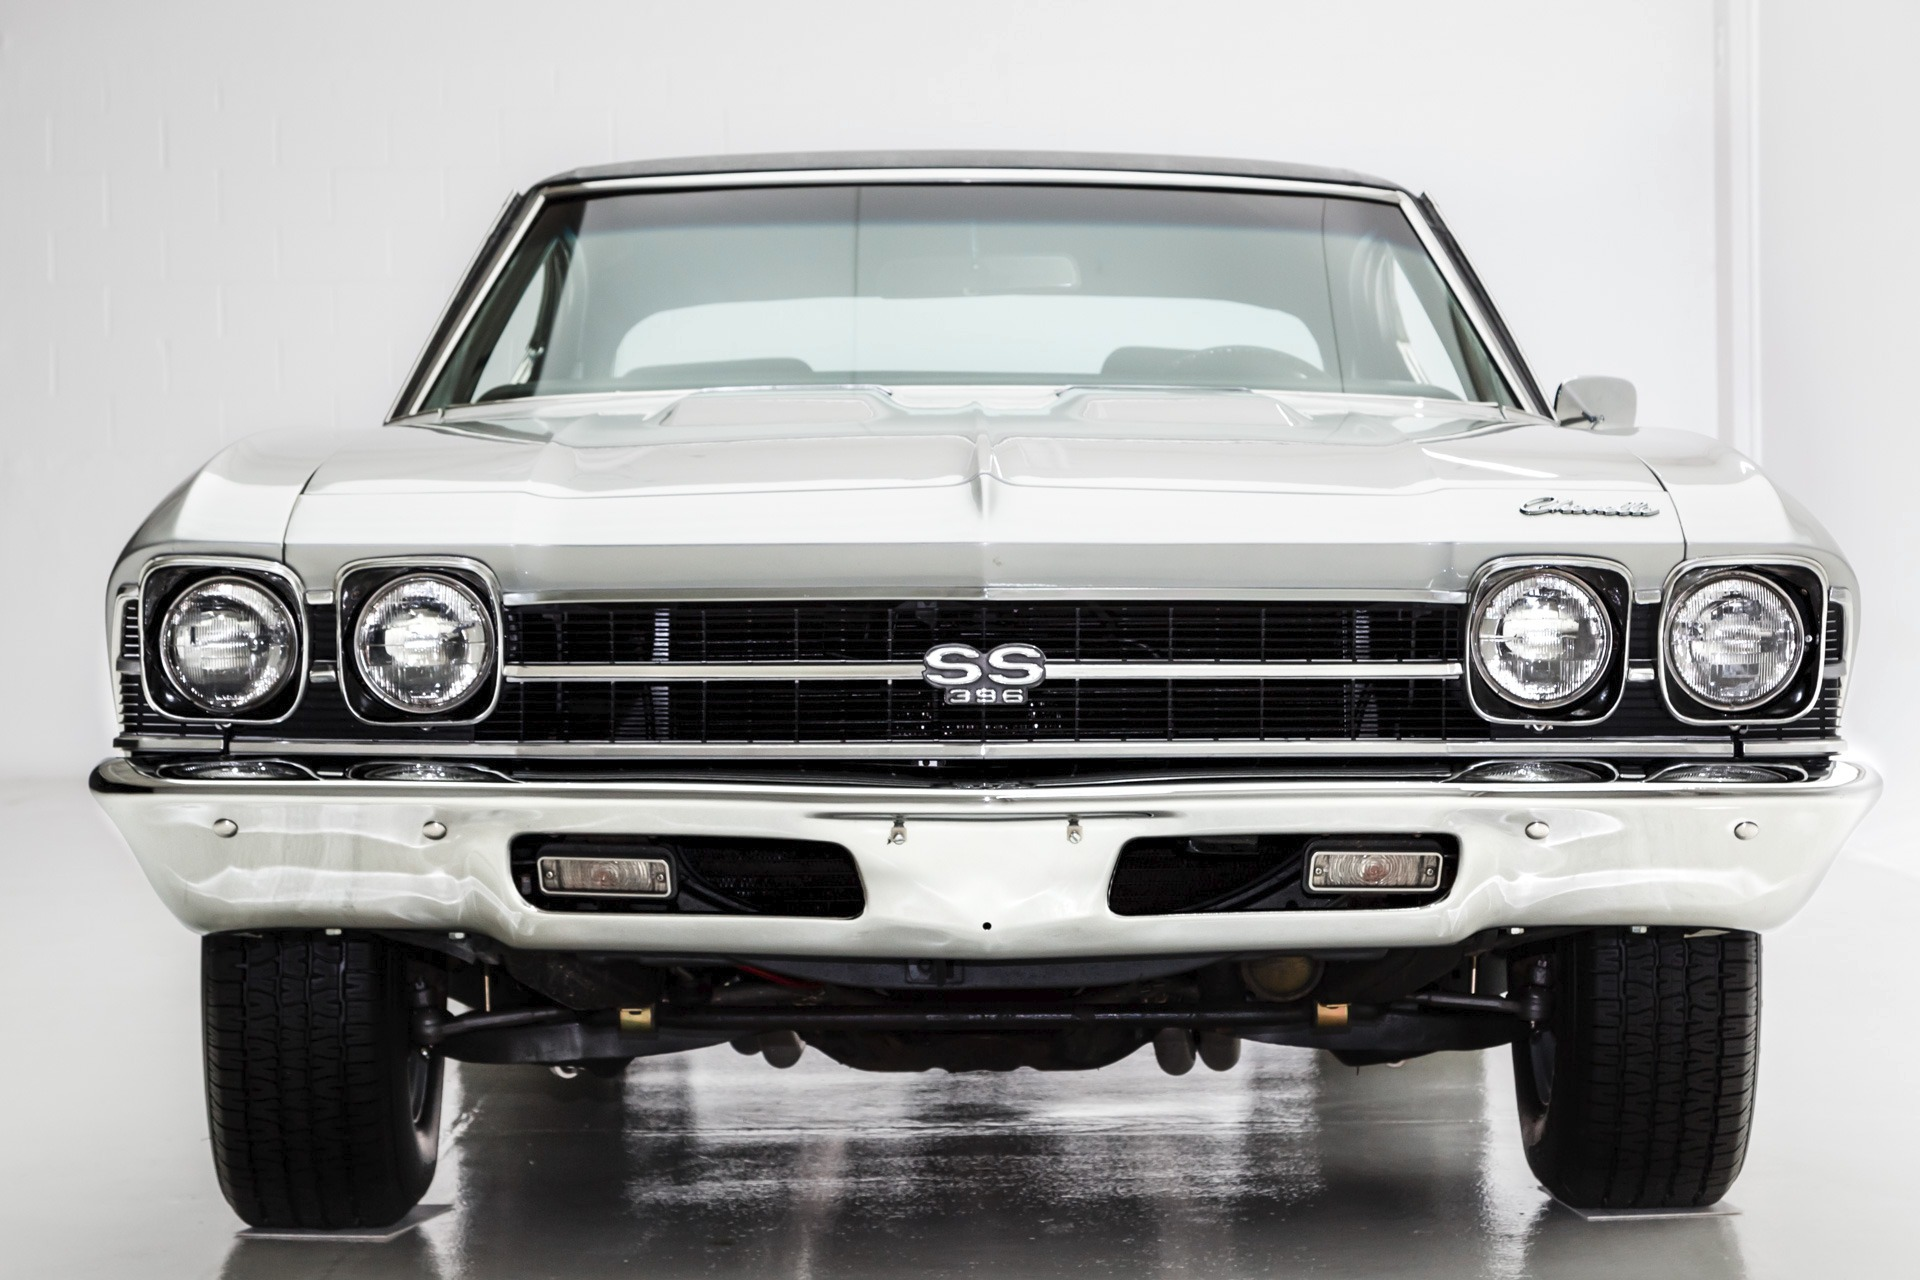 1969 Chevrolet Chevelle Real L-Code SS 396 4-Spd - American Dream ...